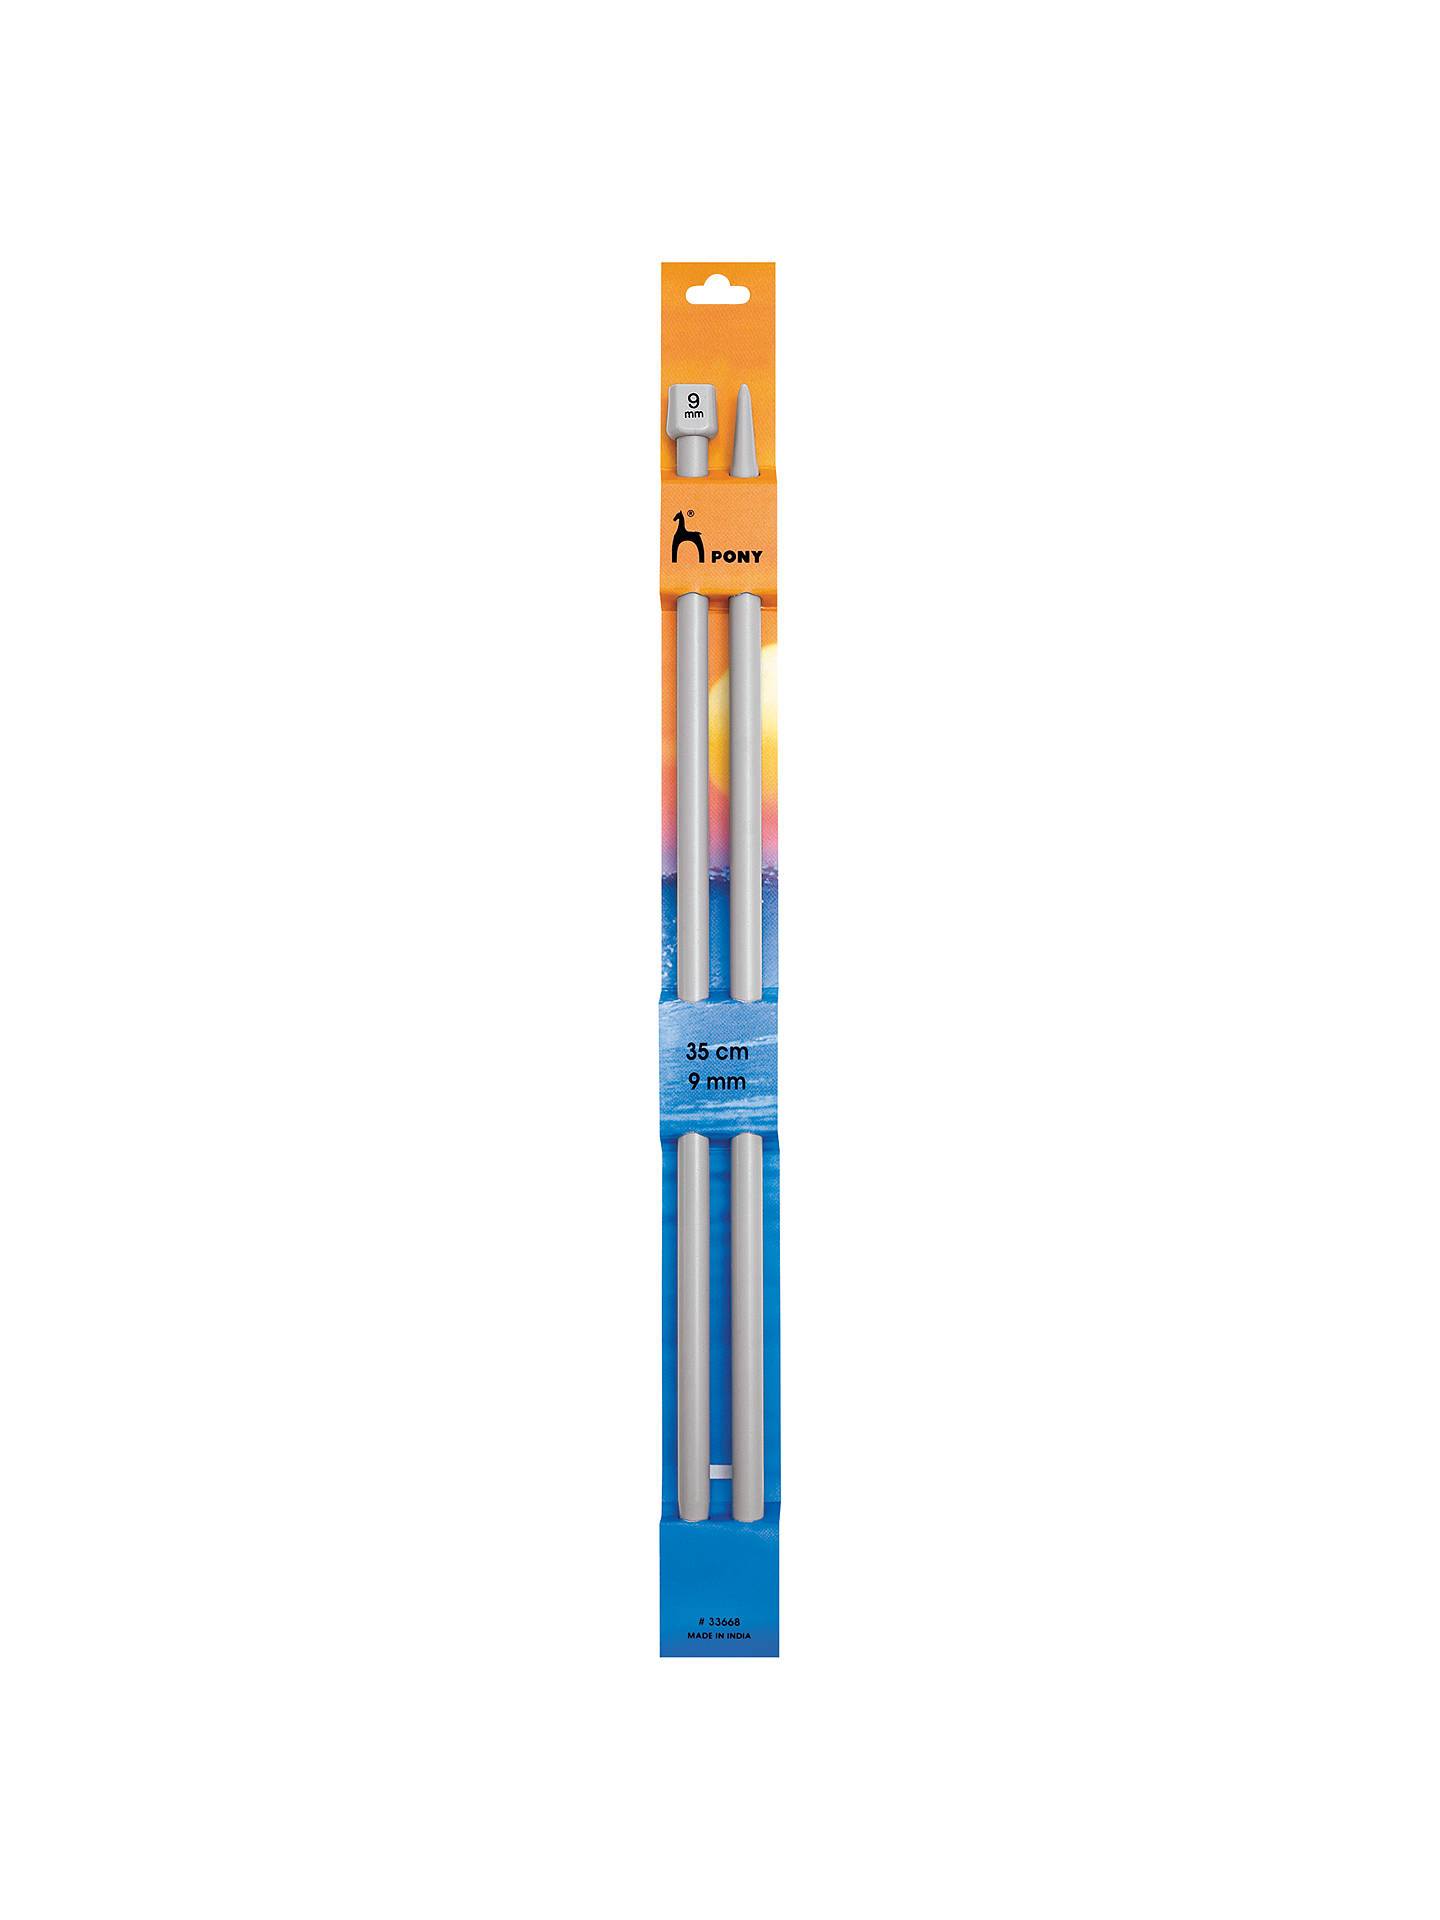 Buy Pony 35cm Knitting Needles, Pack of 2, 4mm, Grey Online at johnlewis.com